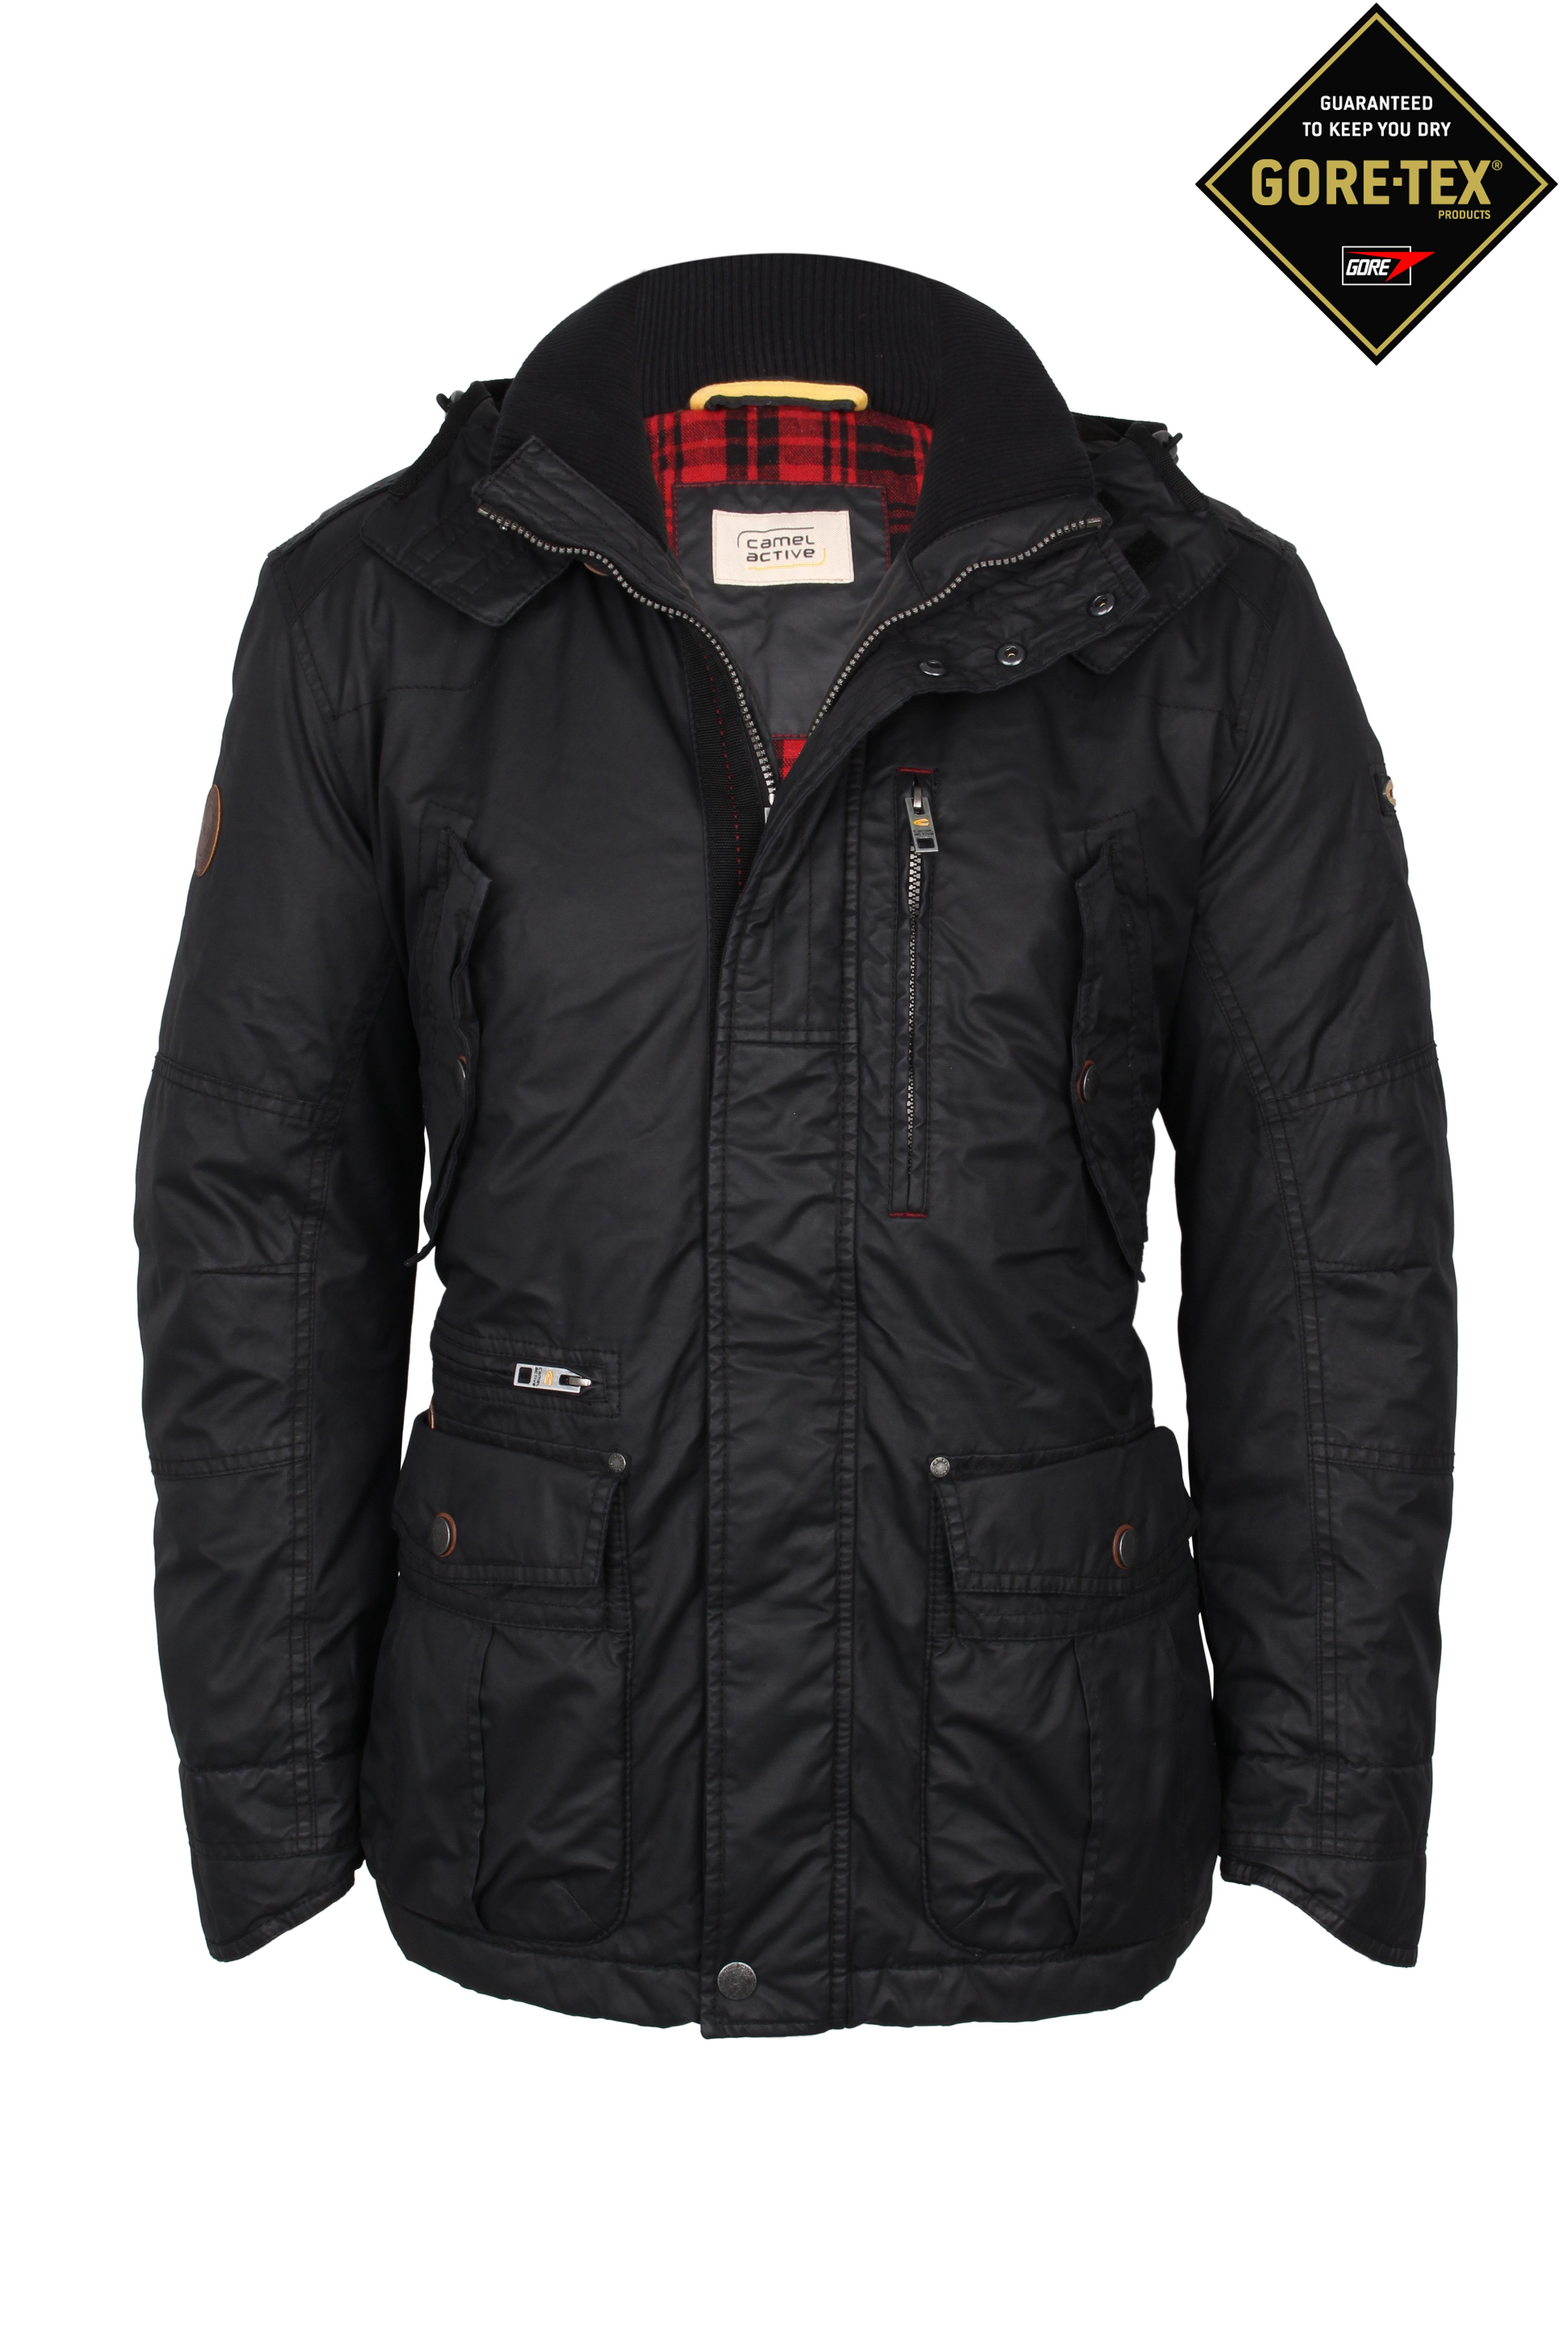 ActiveShoeWorld.de  camel active Jacke Gore-Tex®